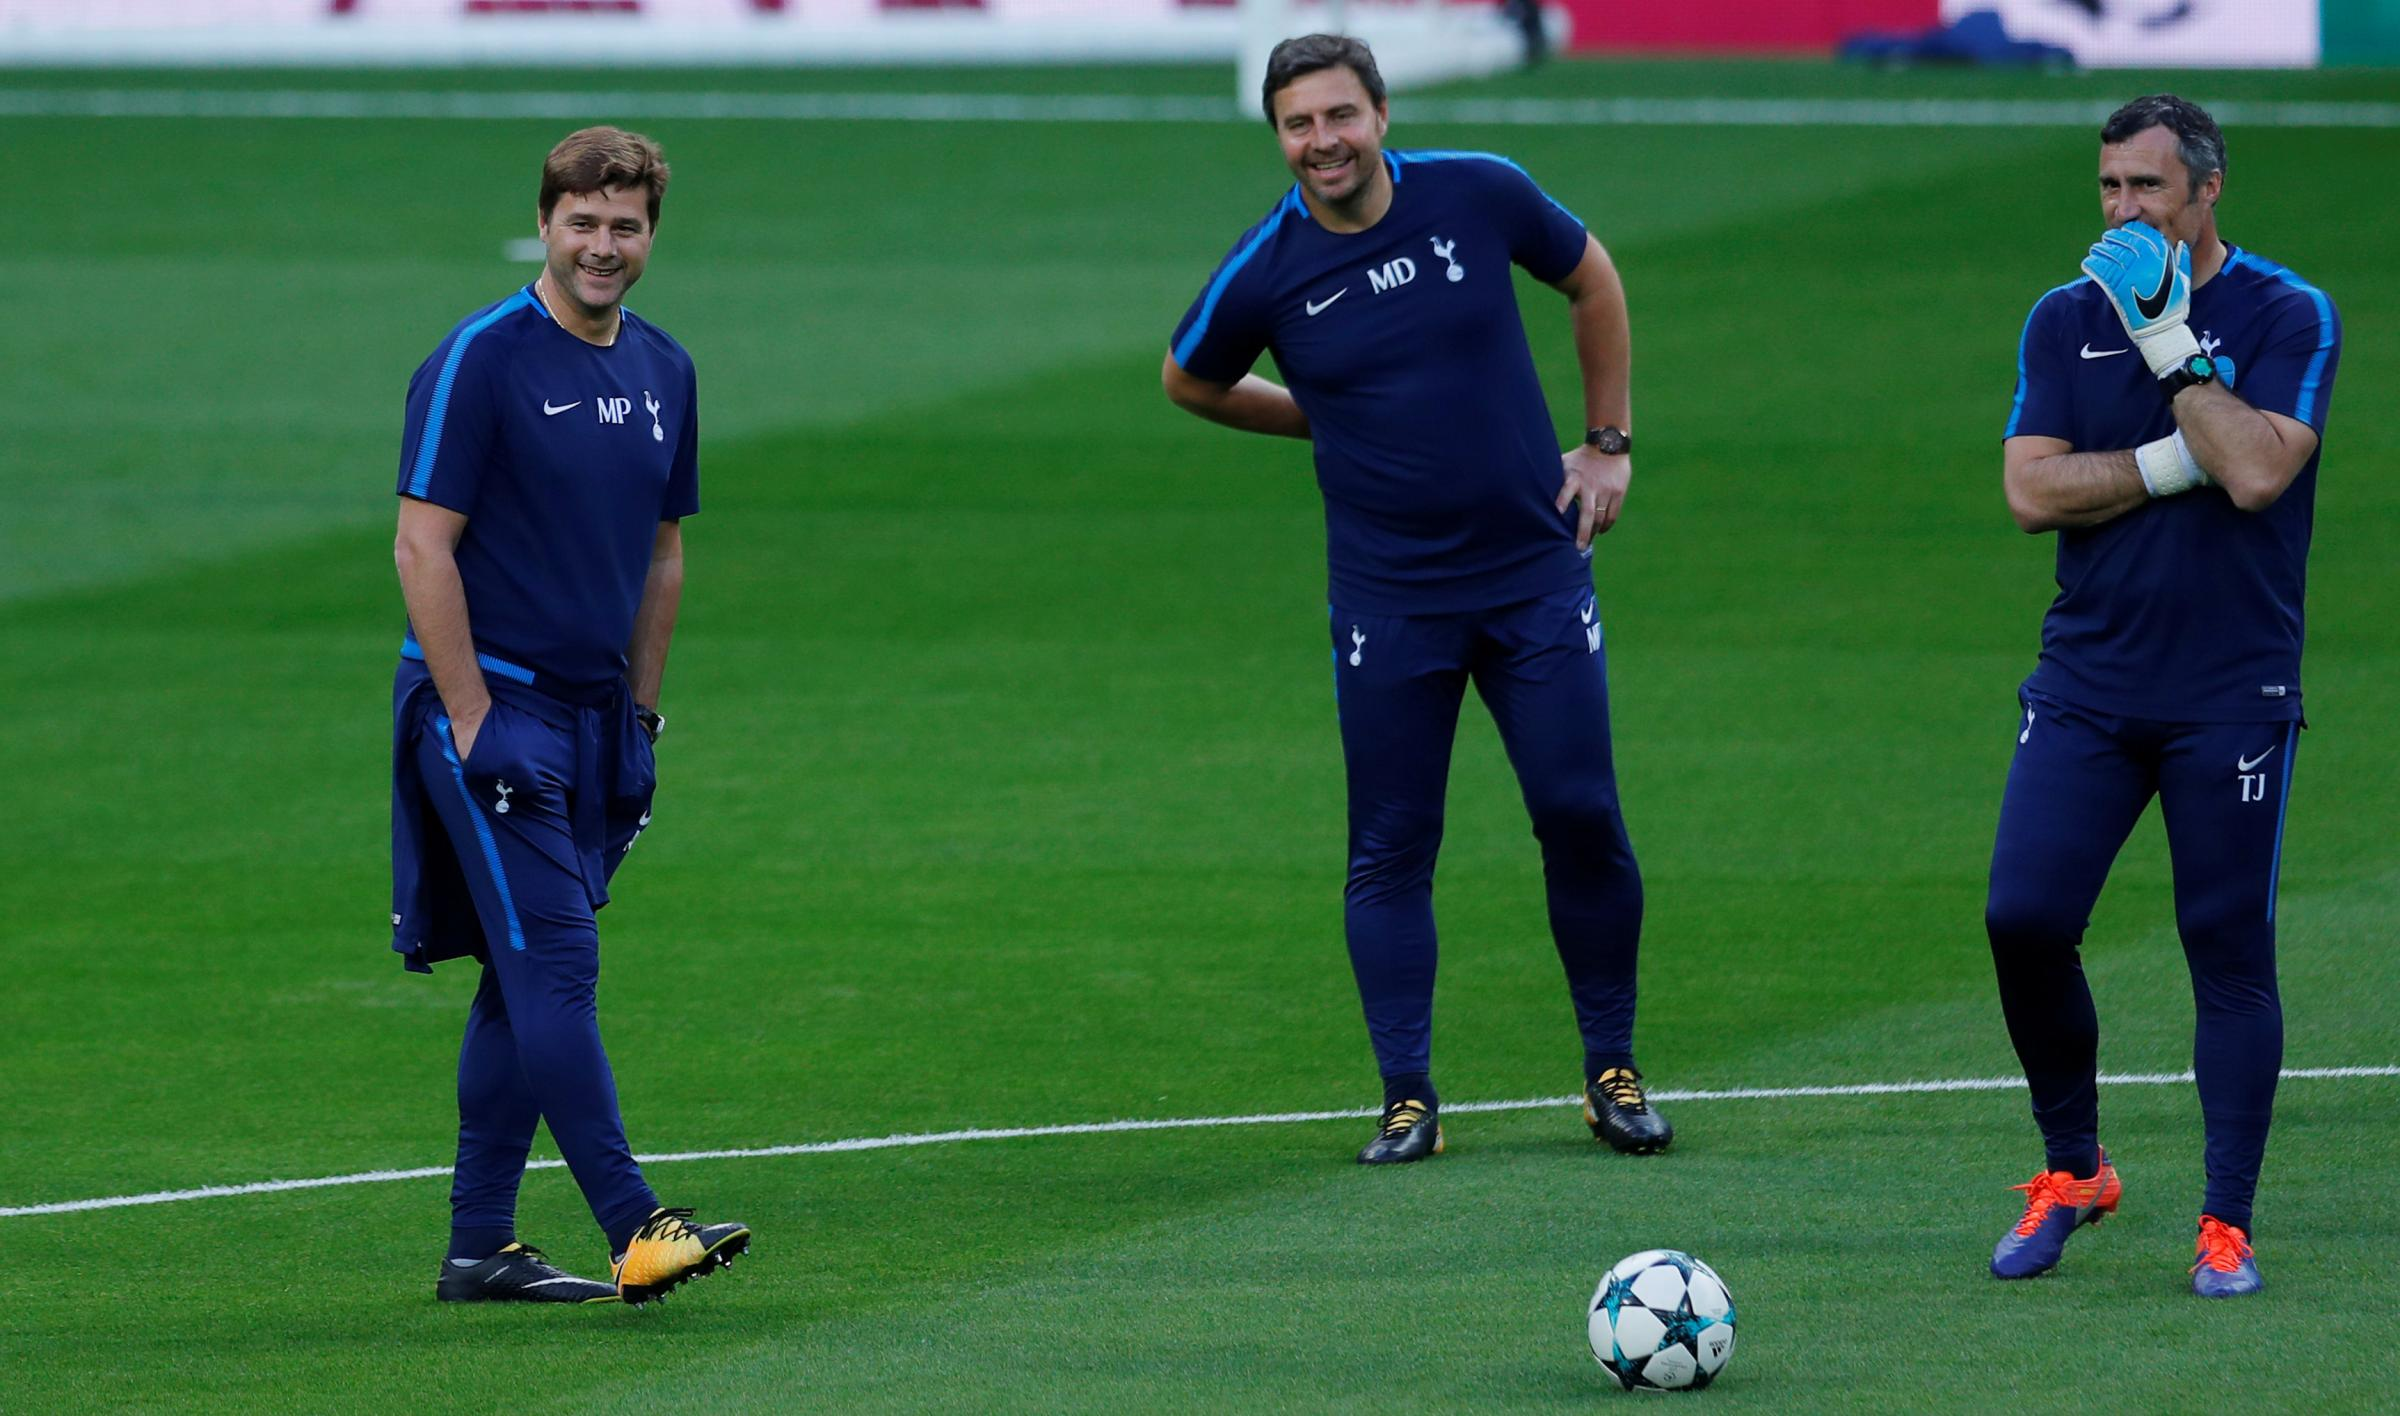 A relaxed Mauricio Pochettino with his staff as Spurs train at the Bernabeu. Picture: Action Images